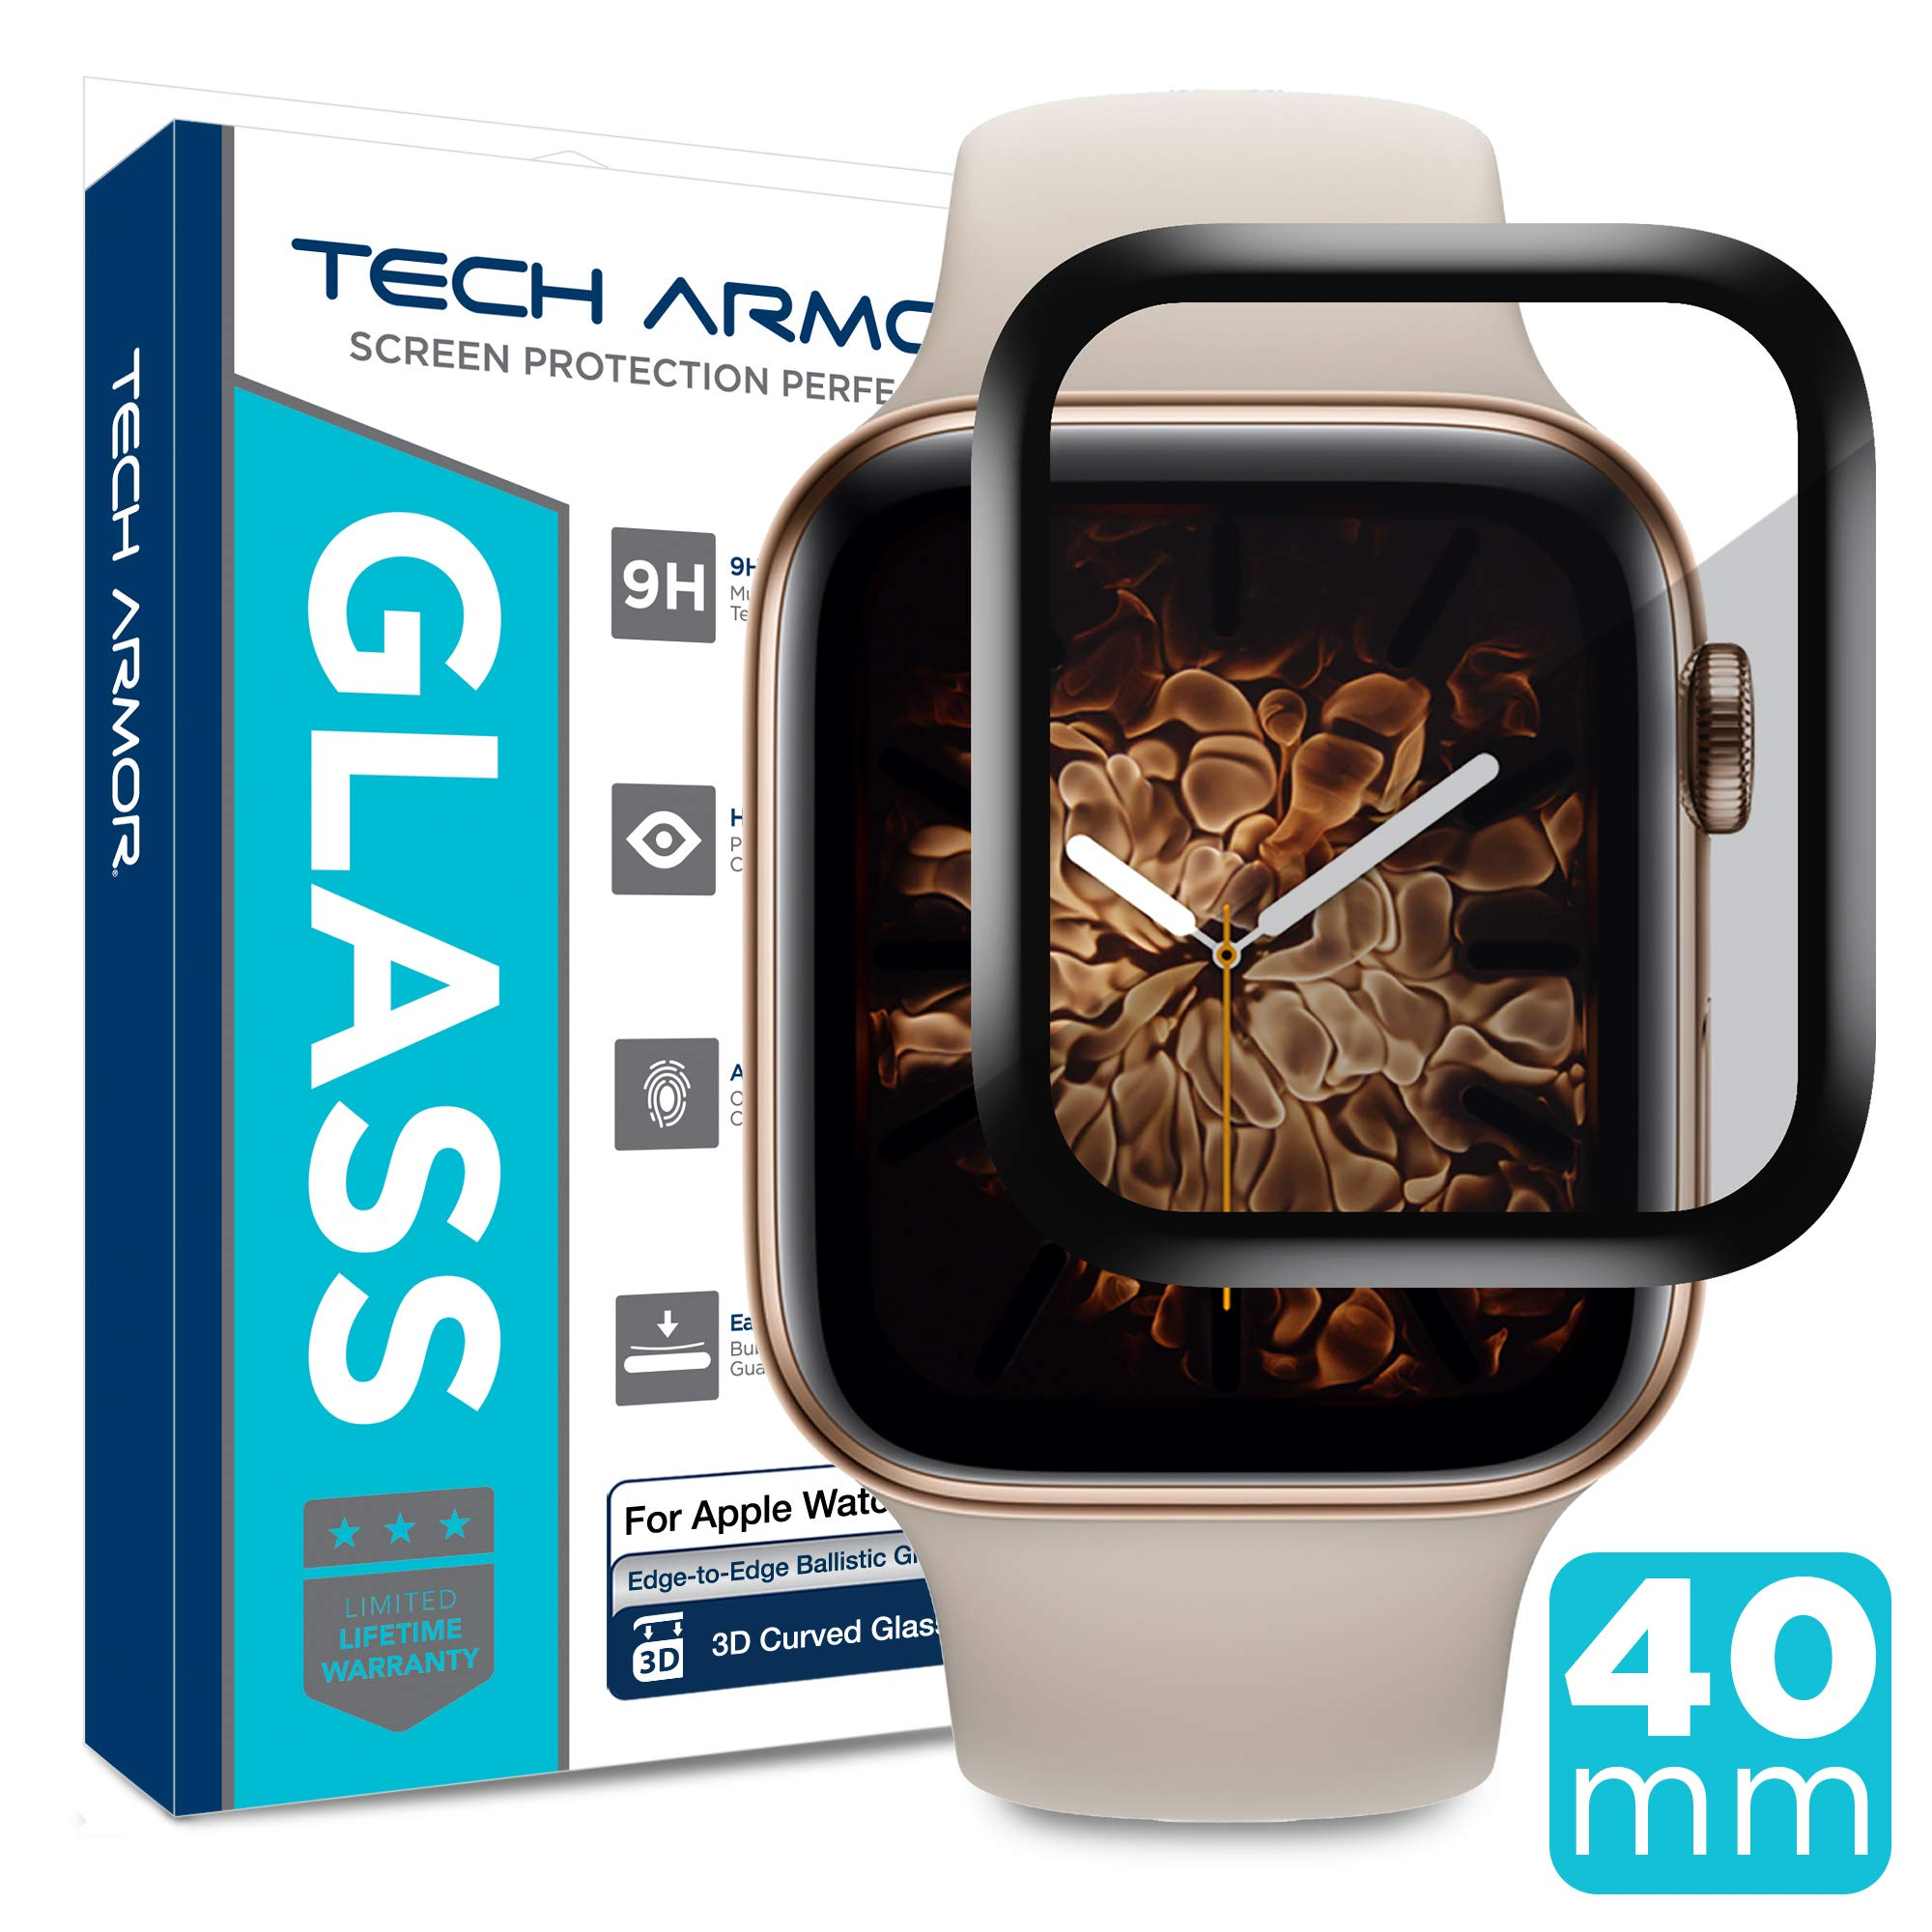 Tech Armor 3D Curved Edge Glass Screen Protector Designed for Apple Watch Series 4 40mm (Black) [1-Pack] by Tech Armor